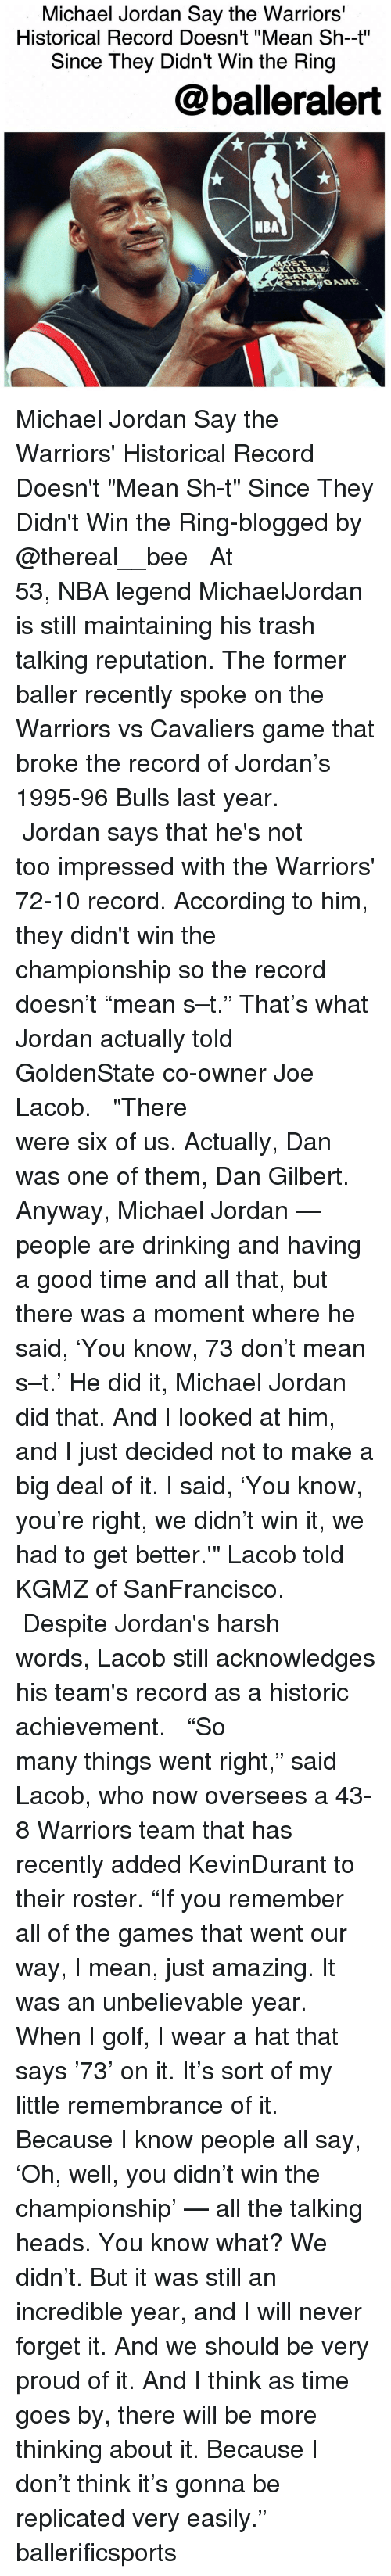 "Memes, Michael Jordan, and 🤖: Michael Jordan Say the Warriors'  Historical Record Doesn't ""Mean Sh-t""  Since They Didn't Win the Ring  balleralert  NBA Michael Jordan Say the Warriors' Historical Record Doesn't ""Mean Sh-t"" Since They Didn't Win the Ring-blogged by @thereal__bee ⠀⠀⠀⠀⠀⠀⠀⠀⠀ ⠀⠀⠀⠀⠀⠀⠀⠀⠀ At 53, NBA legend MichaelJordan is still maintaining his trash talking reputation. The former baller recently spoke on the Warriors vs Cavaliers game that broke the record of Jordan's 1995-96 Bulls last year. ⠀⠀⠀⠀⠀⠀⠀⠀⠀ ⠀⠀⠀⠀⠀⠀⠀⠀⠀ Jordan says that he's not too impressed with the Warriors' 72-10 record. According to him, they didn't win the championship so the record doesn't ""mean s–t."" That's what Jordan actually told GoldenState co-owner Joe Lacob. ⠀⠀⠀⠀⠀⠀⠀⠀⠀ ⠀⠀⠀⠀⠀⠀⠀⠀⠀ ""There were six of us. Actually, Dan was one of them, Dan Gilbert. Anyway, Michael Jordan — people are drinking and having a good time and all that, but there was a moment where he said, 'You know, 73 don't mean s–t.' He did it, Michael Jordan did that. And I looked at him, and I just decided not to make a big deal of it. I said, 'You know, you're right, we didn't win it, we had to get better.'"" Lacob told KGMZ of SanFrancisco. ⠀⠀⠀⠀⠀⠀⠀⠀⠀ ⠀⠀⠀⠀⠀⠀⠀⠀⠀ Despite Jordan's harsh words, Lacob still acknowledges his team's record as a historic achievement. ⠀⠀⠀⠀⠀⠀⠀⠀⠀ ⠀⠀⠀⠀⠀⠀⠀⠀⠀ ""So many things went right,"" said Lacob, who now oversees a 43-8 Warriors team that has recently added KevinDurant to their roster. ""If you remember all of the games that went our way, I mean, just amazing. It was an unbelievable year. When I golf, I wear a hat that says '73' on it. It's sort of my little remembrance of it. Because I know people all say, 'Oh, well, you didn't win the championship' — all the talking heads. You know what? We didn't. But it was still an incredible year, and I will never forget it. And we should be very proud of it. And I think as time goes by, there will be more thinking about it. Because I don't think it's gonna be replicated very easily."" ballerificsports"